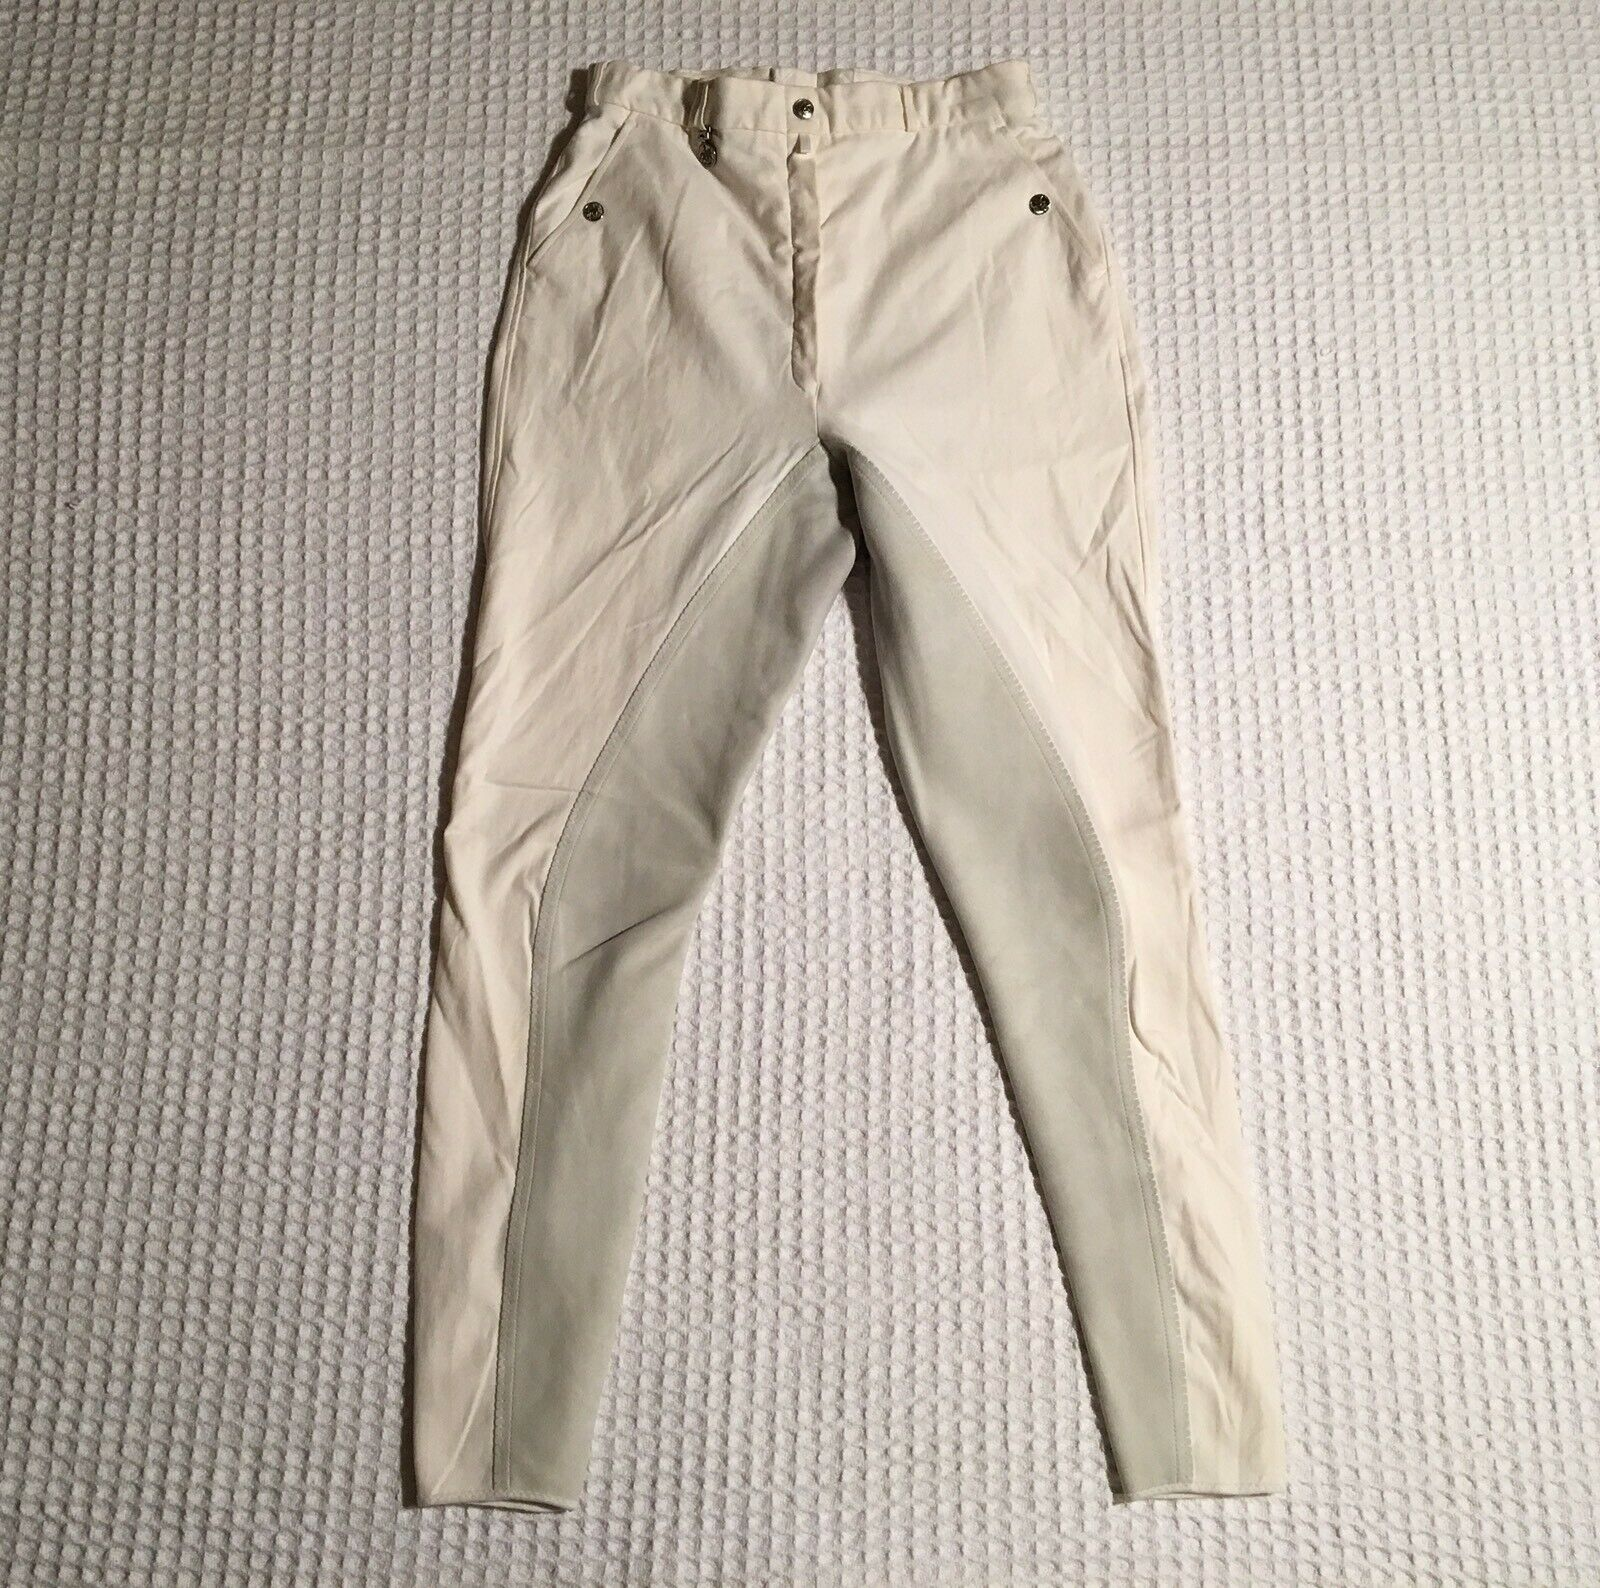 PIKEUR Full Suede  Seat Horse Riding Equestrian Jodhpurs Breeches 32 L Long White  great offers